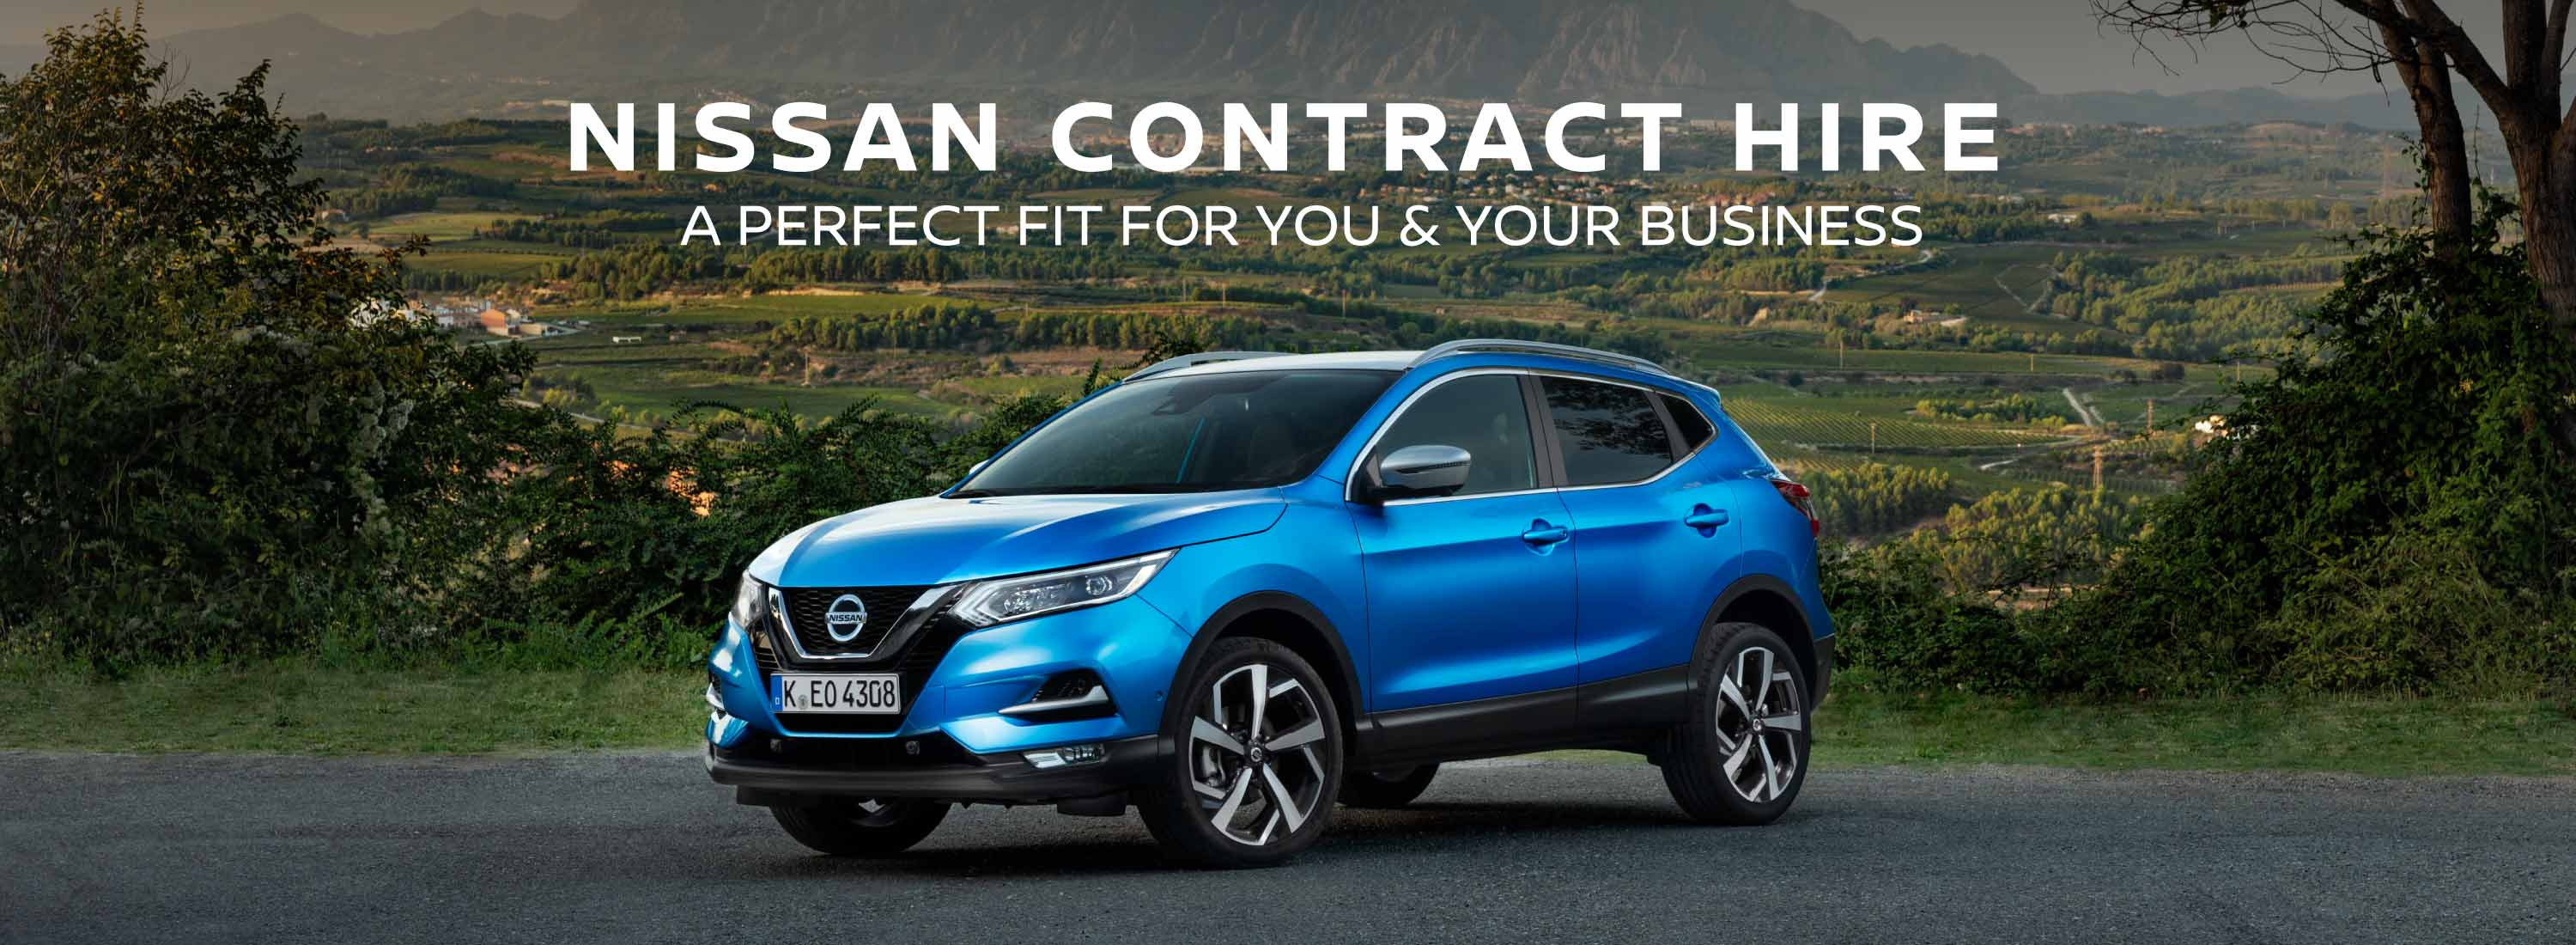 Nissan Contract Hire BB